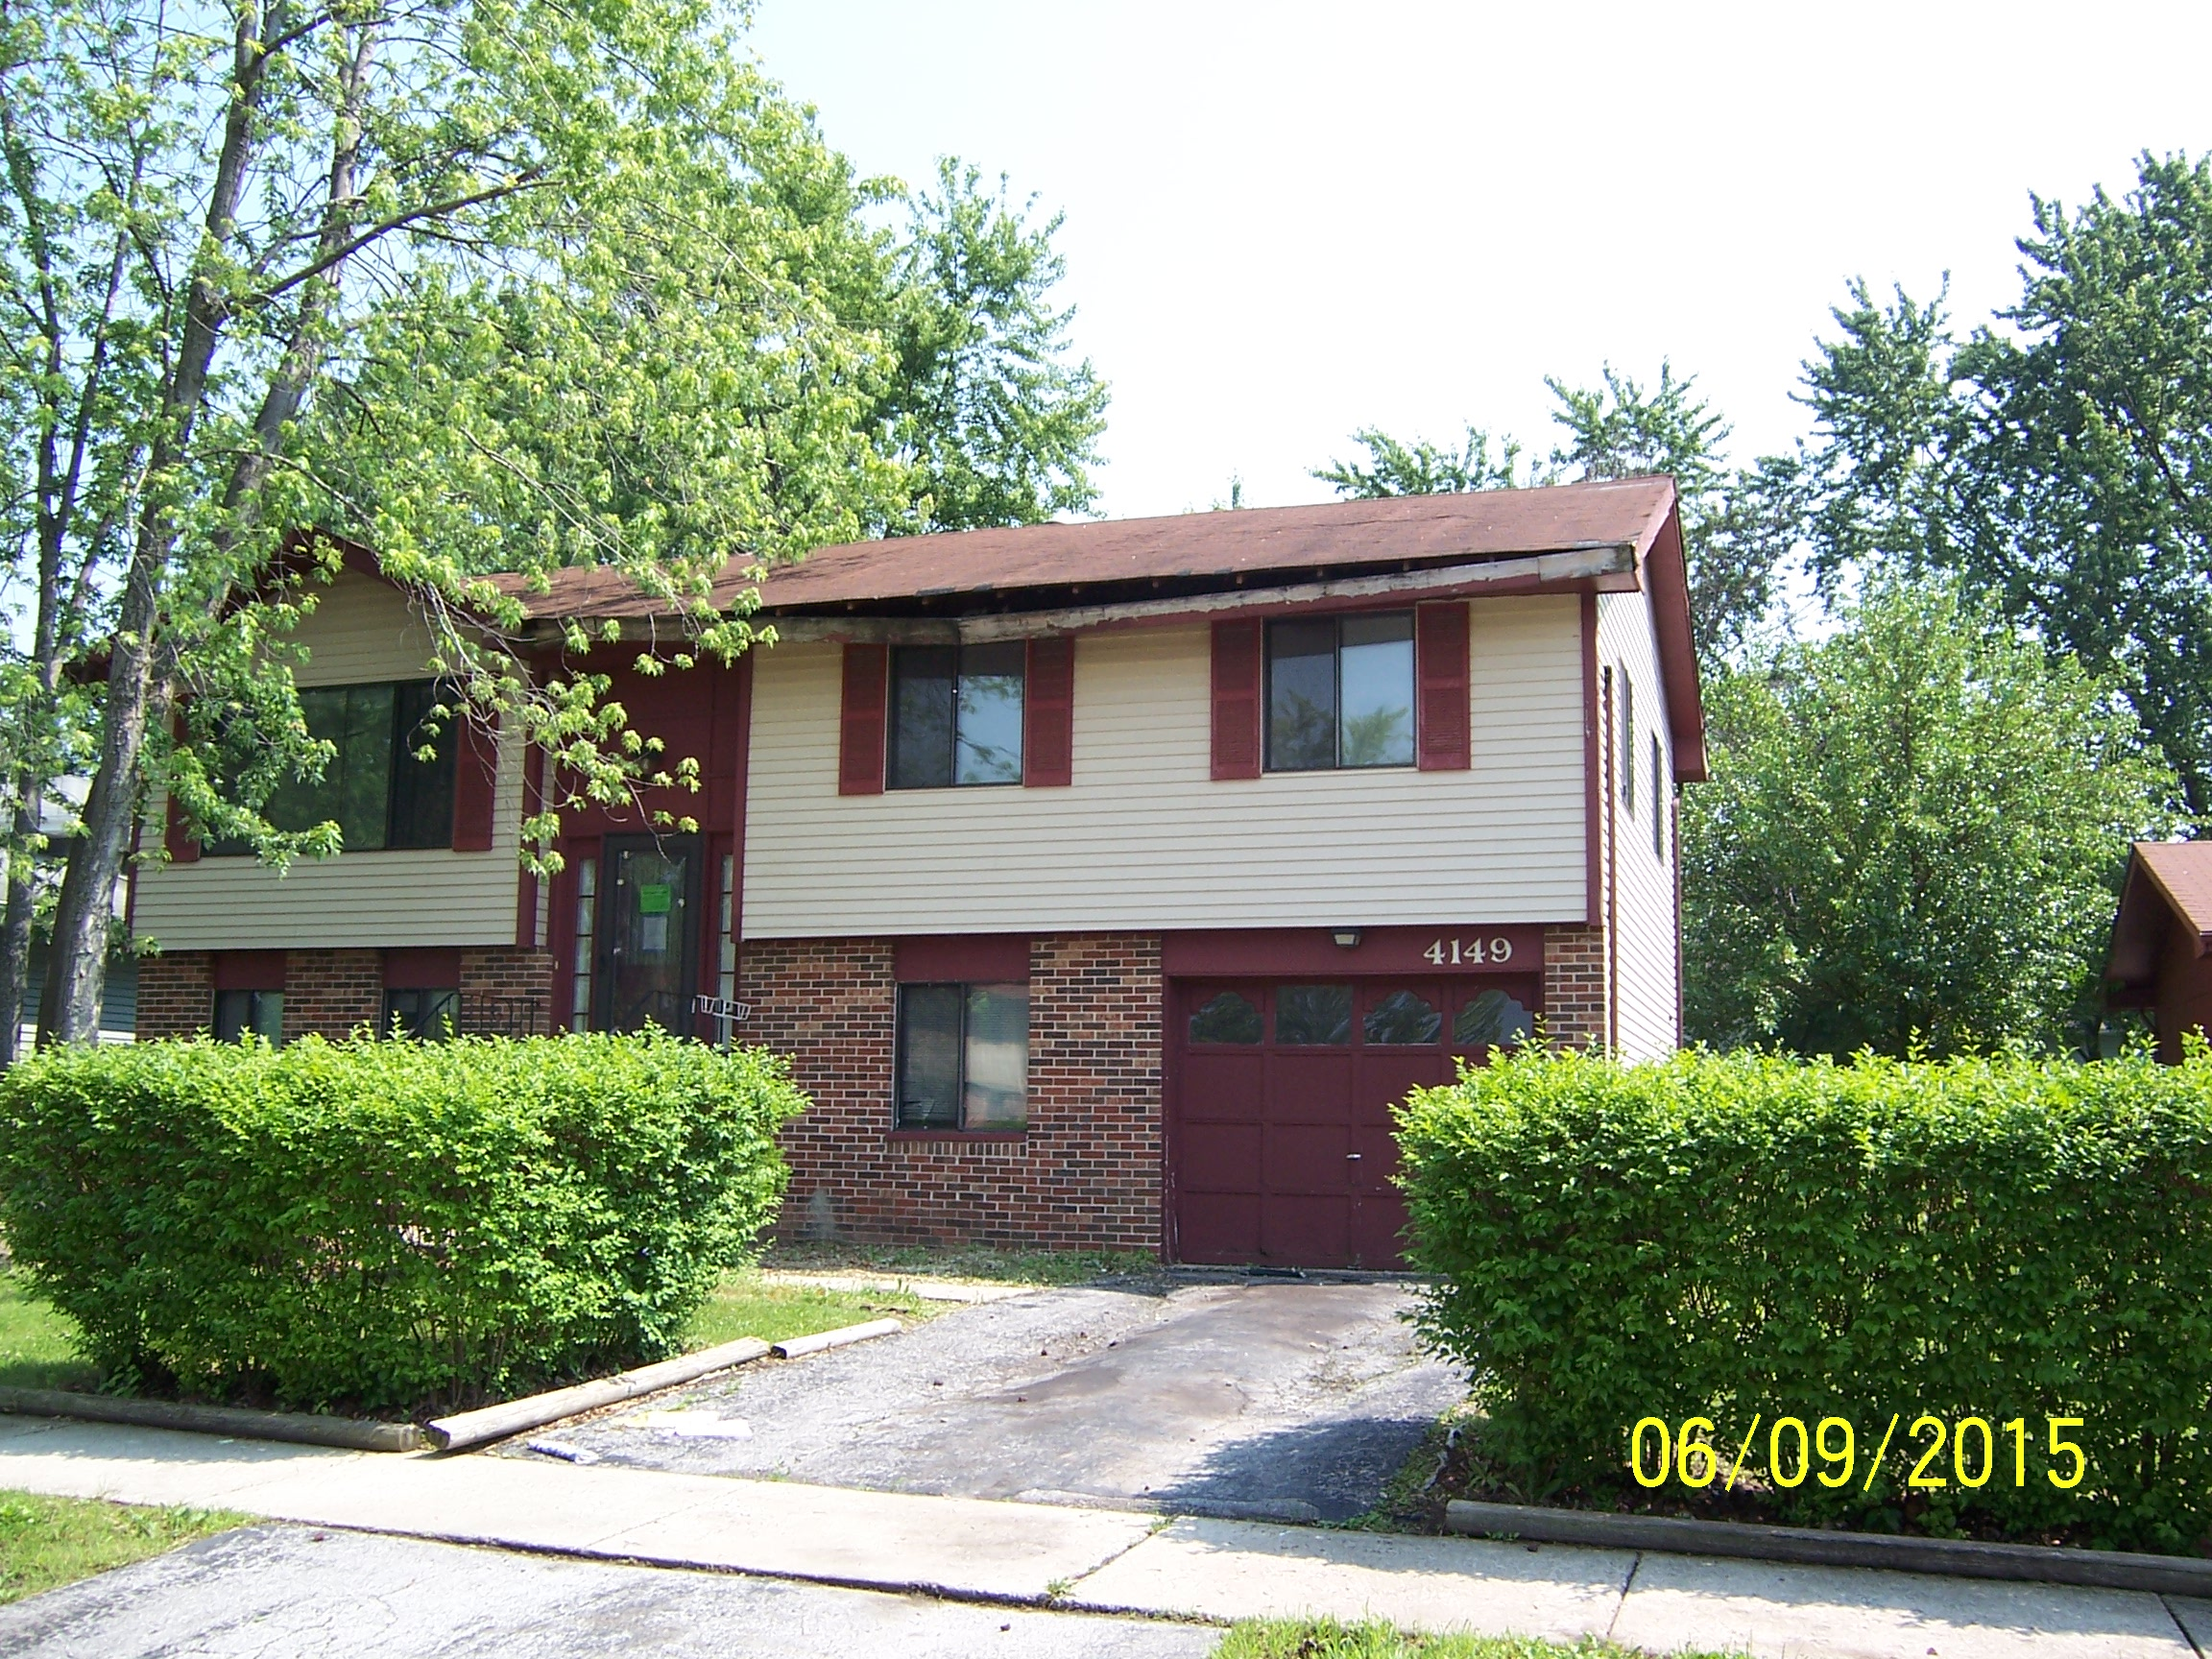 4149 187th Pl, Country Club Hills, IL 60478